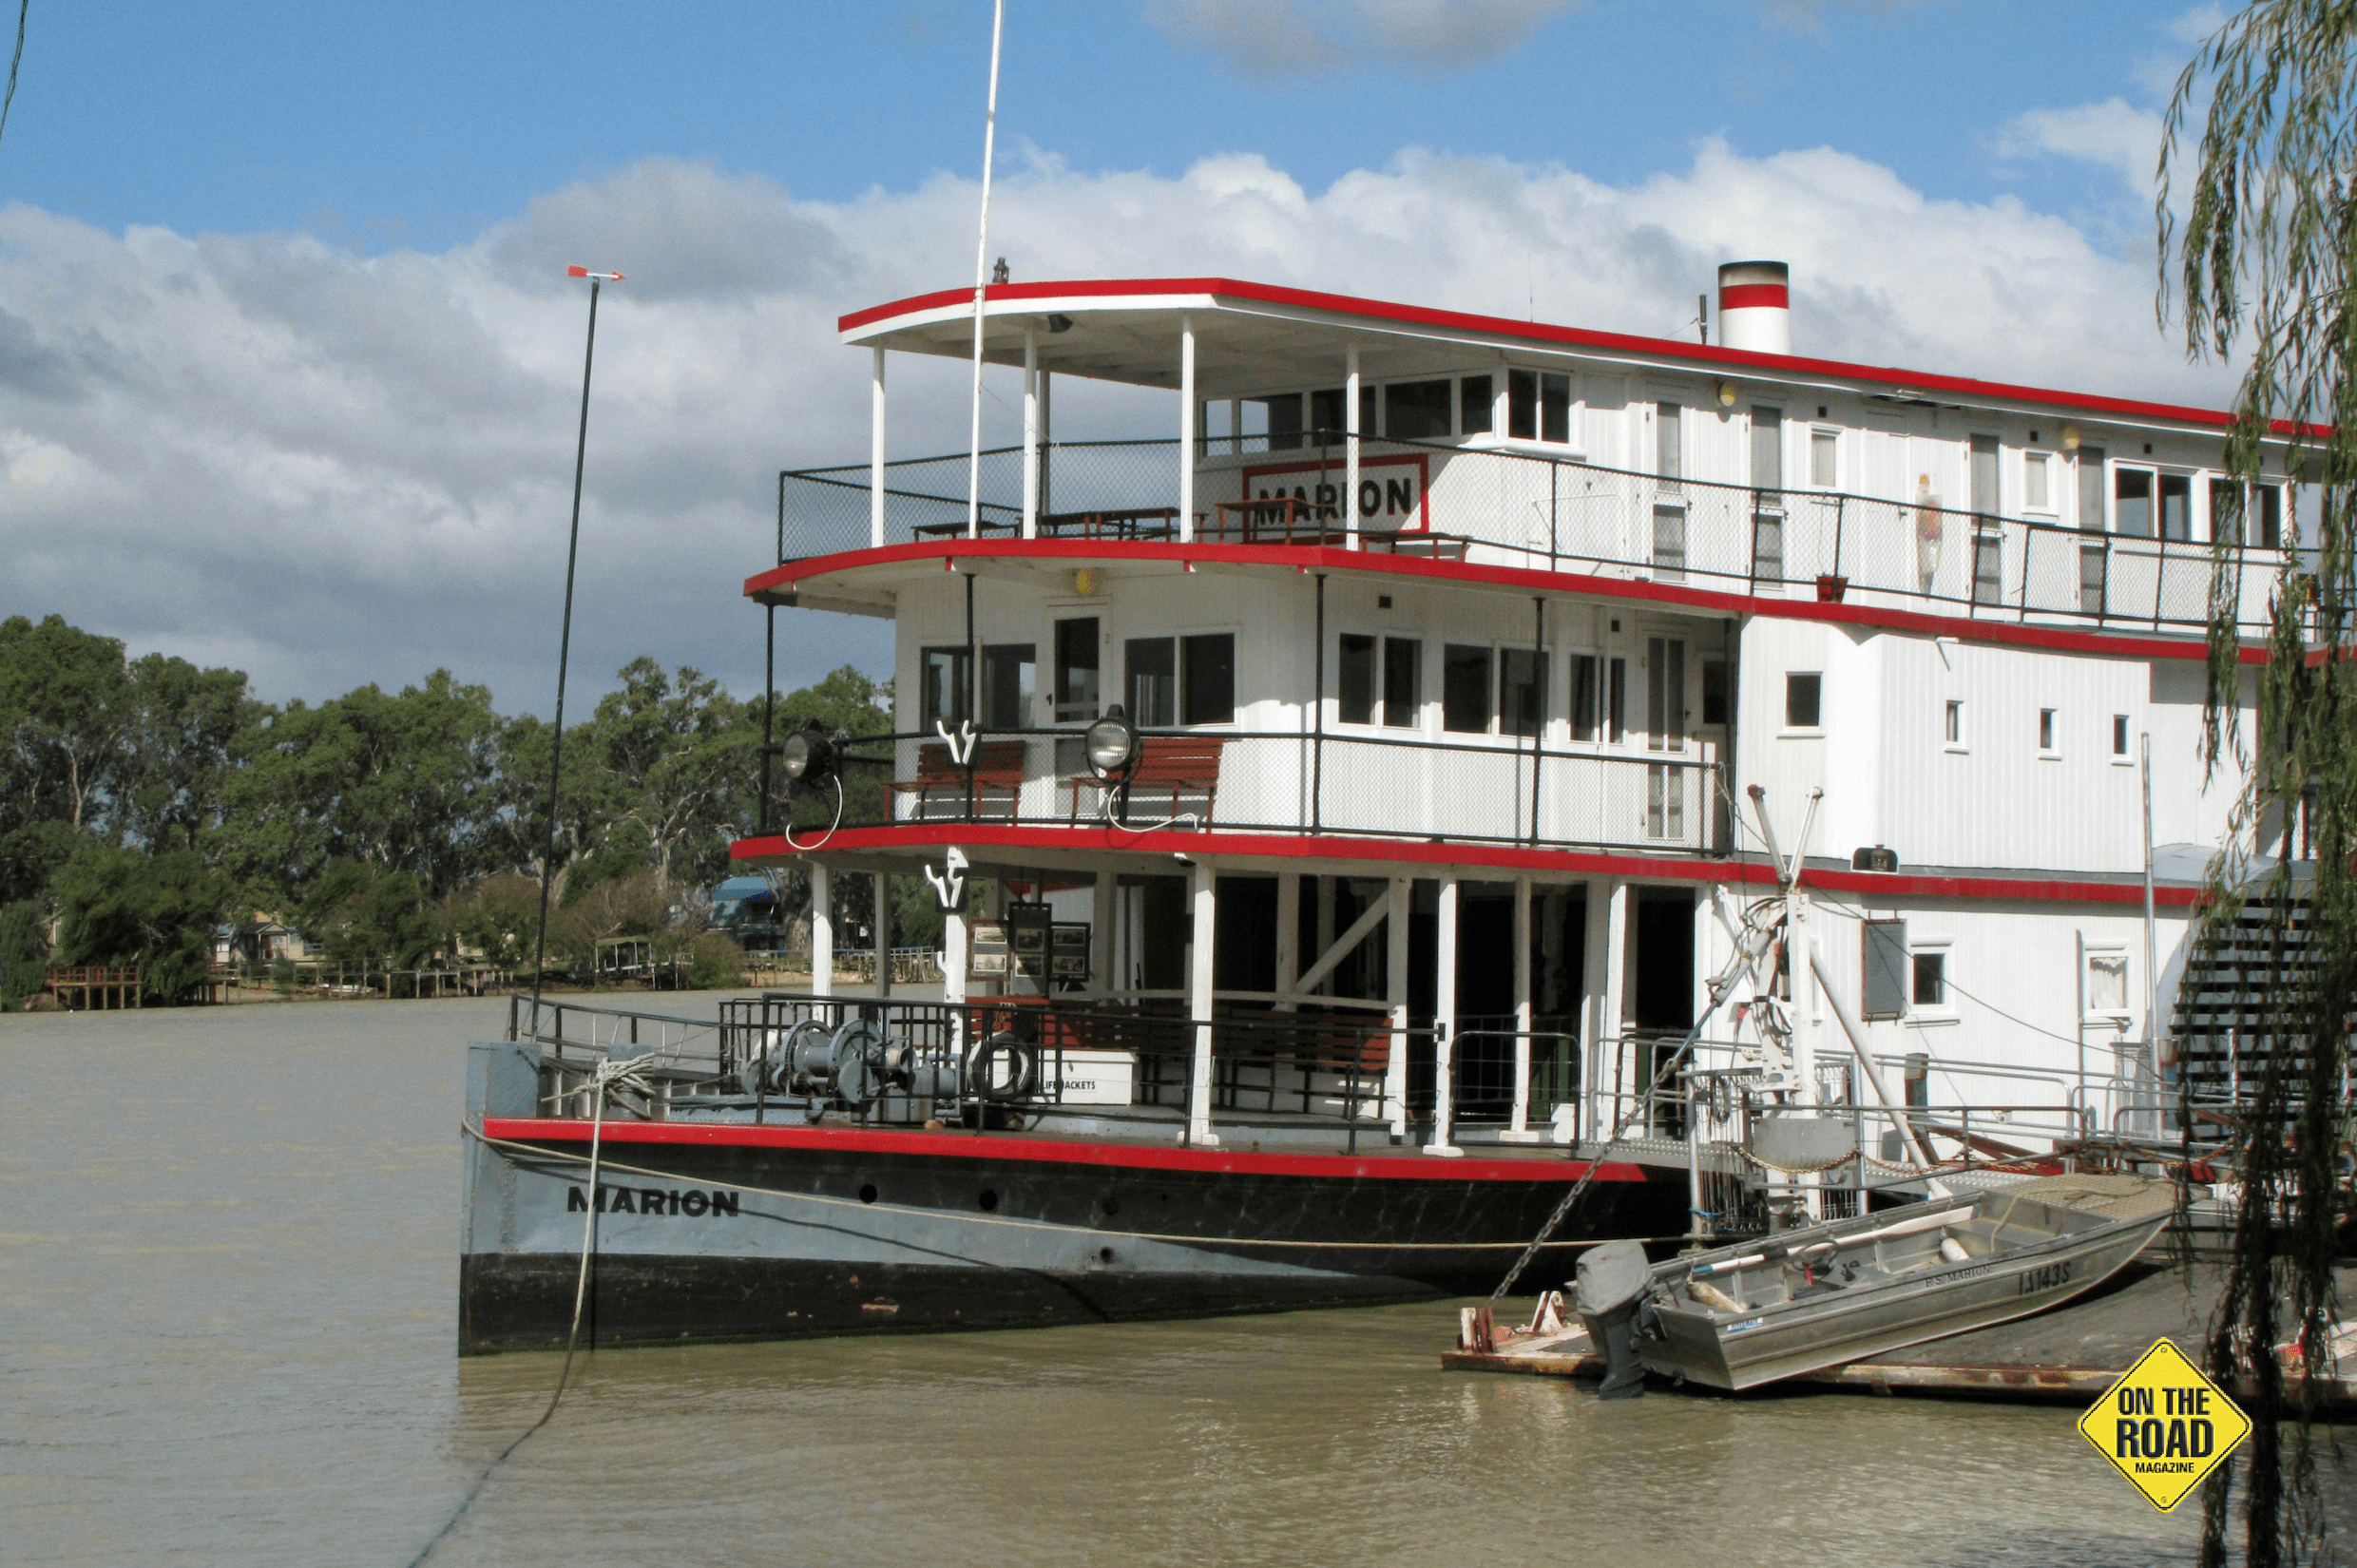 Explore the proud old paddle steamer P.S. Marion at the Mannum Dock Museum, which adjoins Mannum visitor information centre in South Australia.